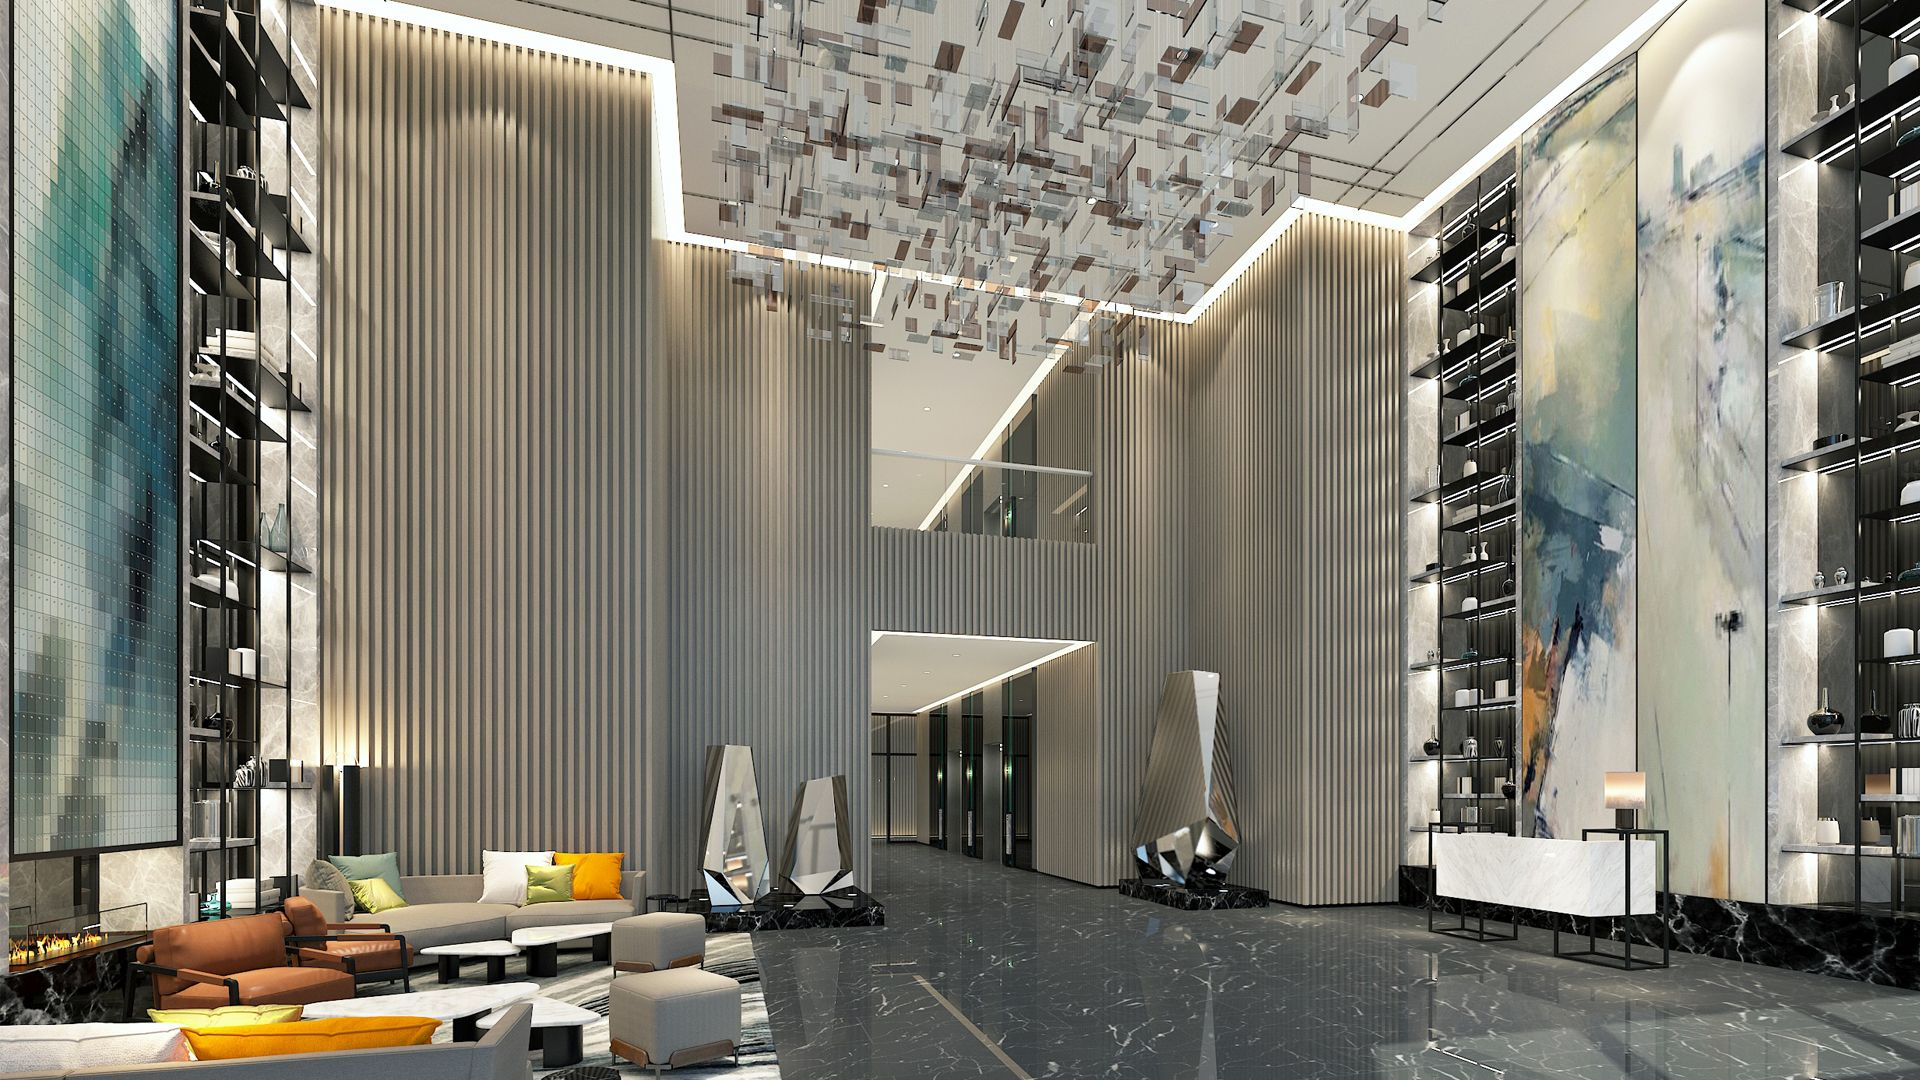 Onyx to Open Amari East Bay Hangzhou in Qiantang